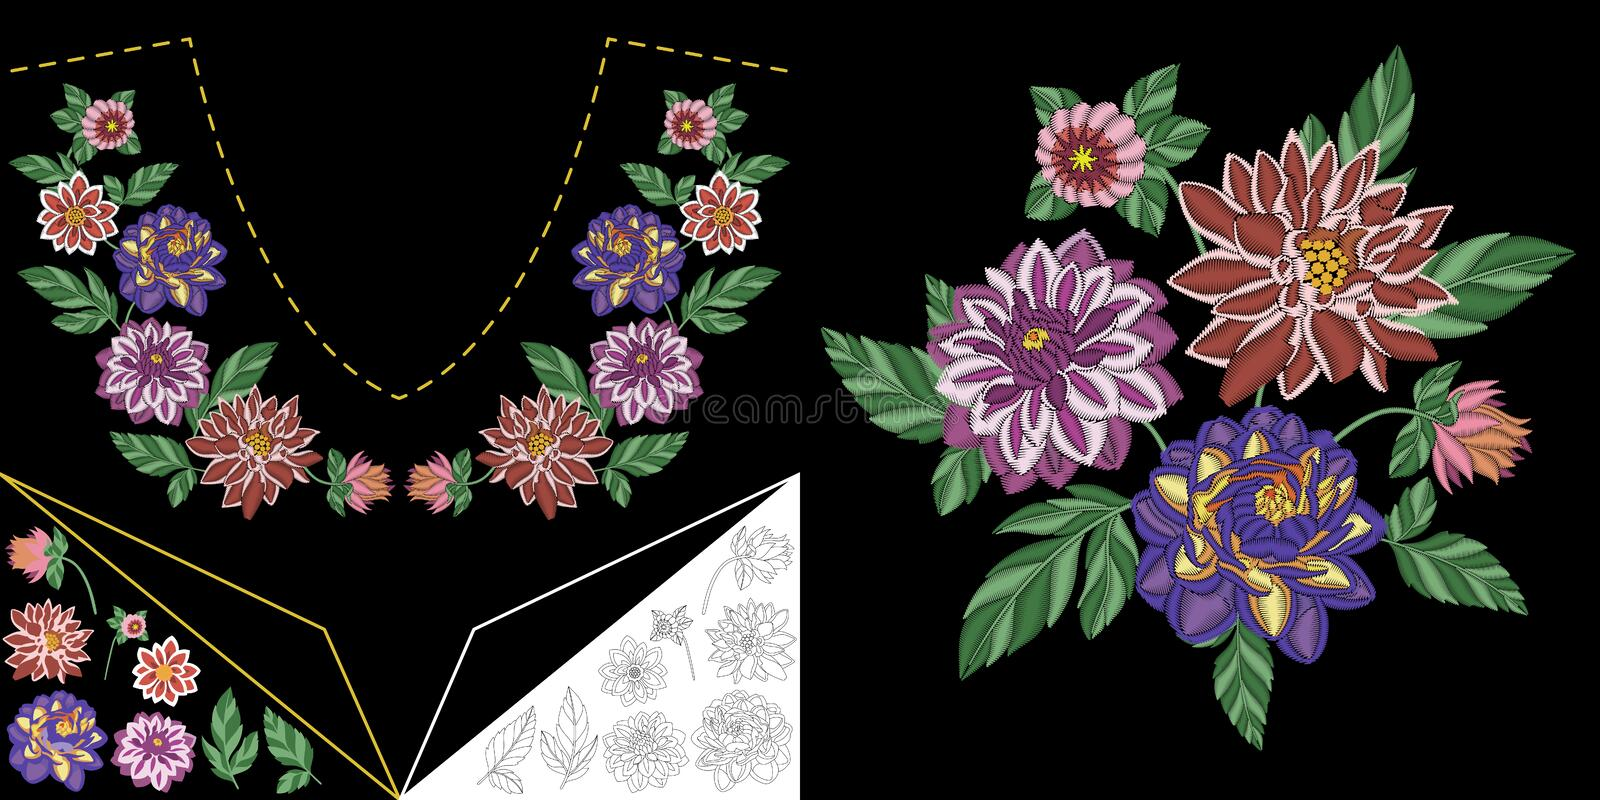 Embroidery floral neckline design stock photo